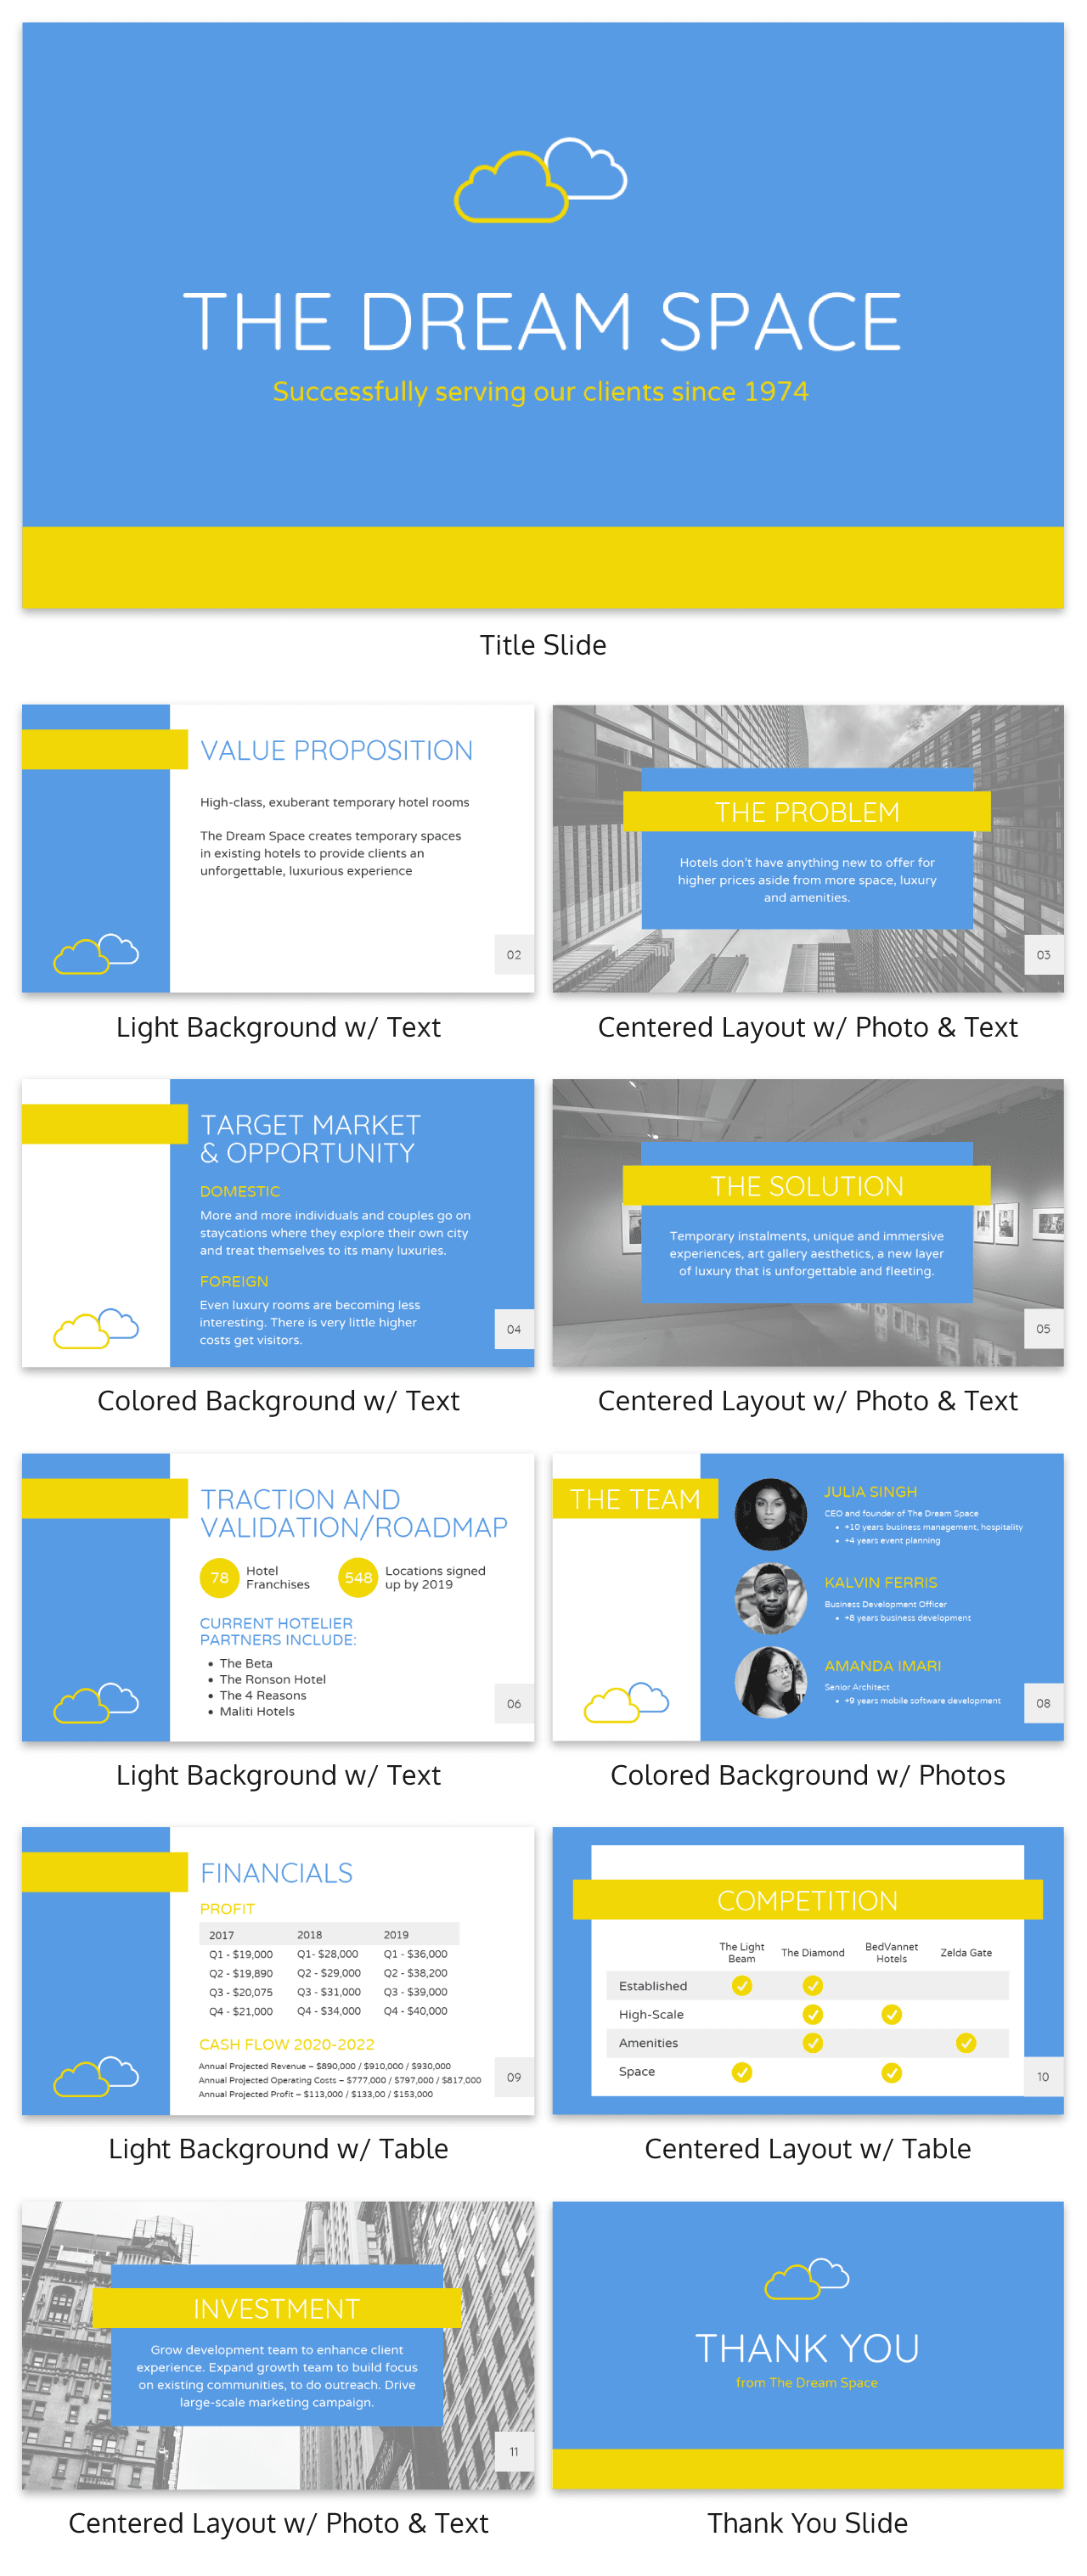 12 business pitch deck templates and design best practices to business pitch deck templates cheaphphosting Images